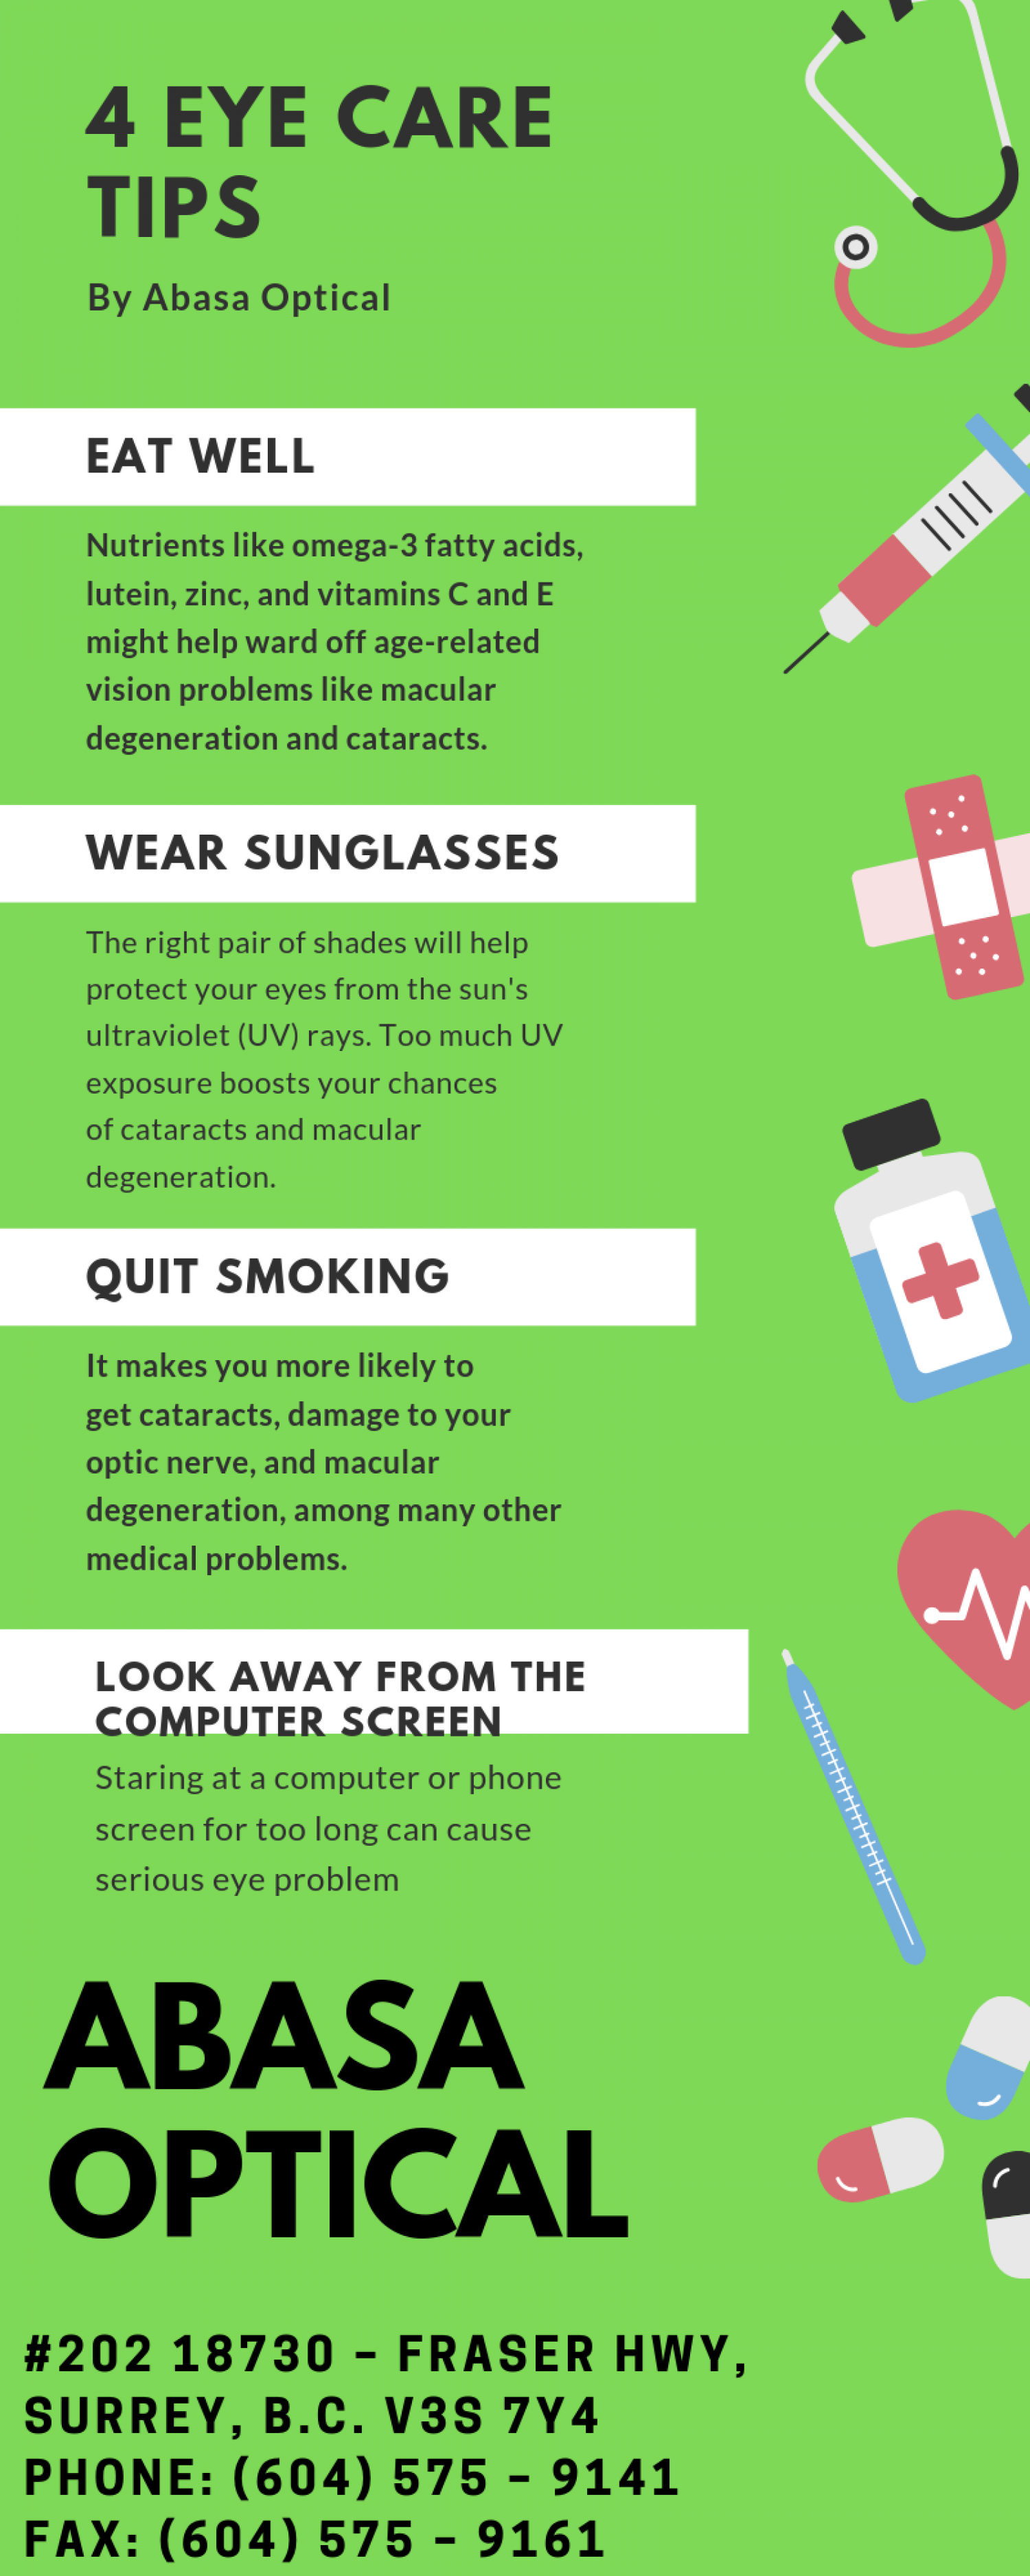 4 Eye Care Tips By Abasa Optical Infographic